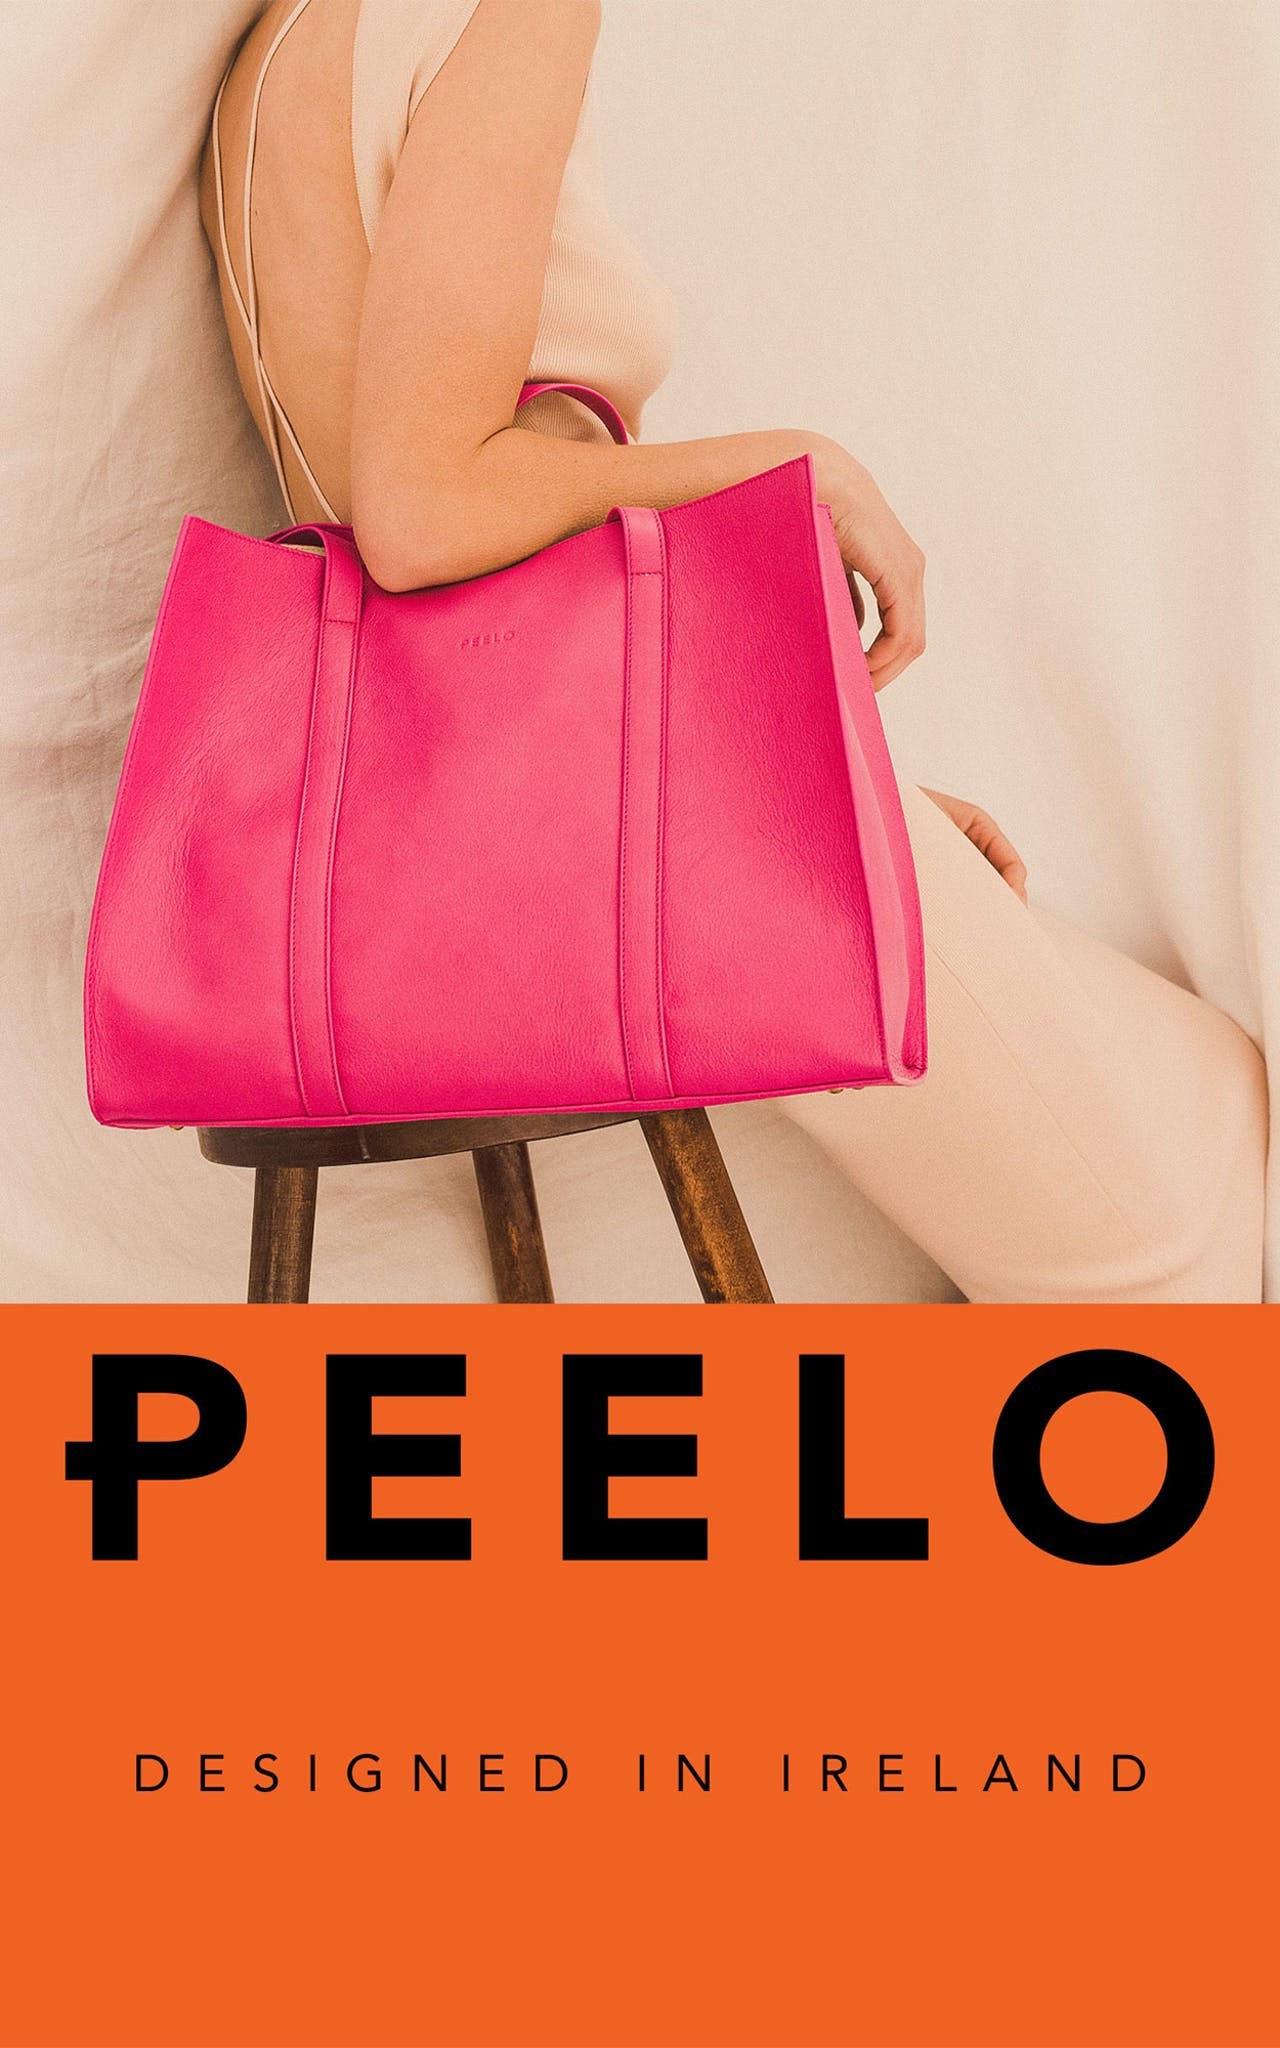 PEELO leather handbags and wallets Designed in Ireland